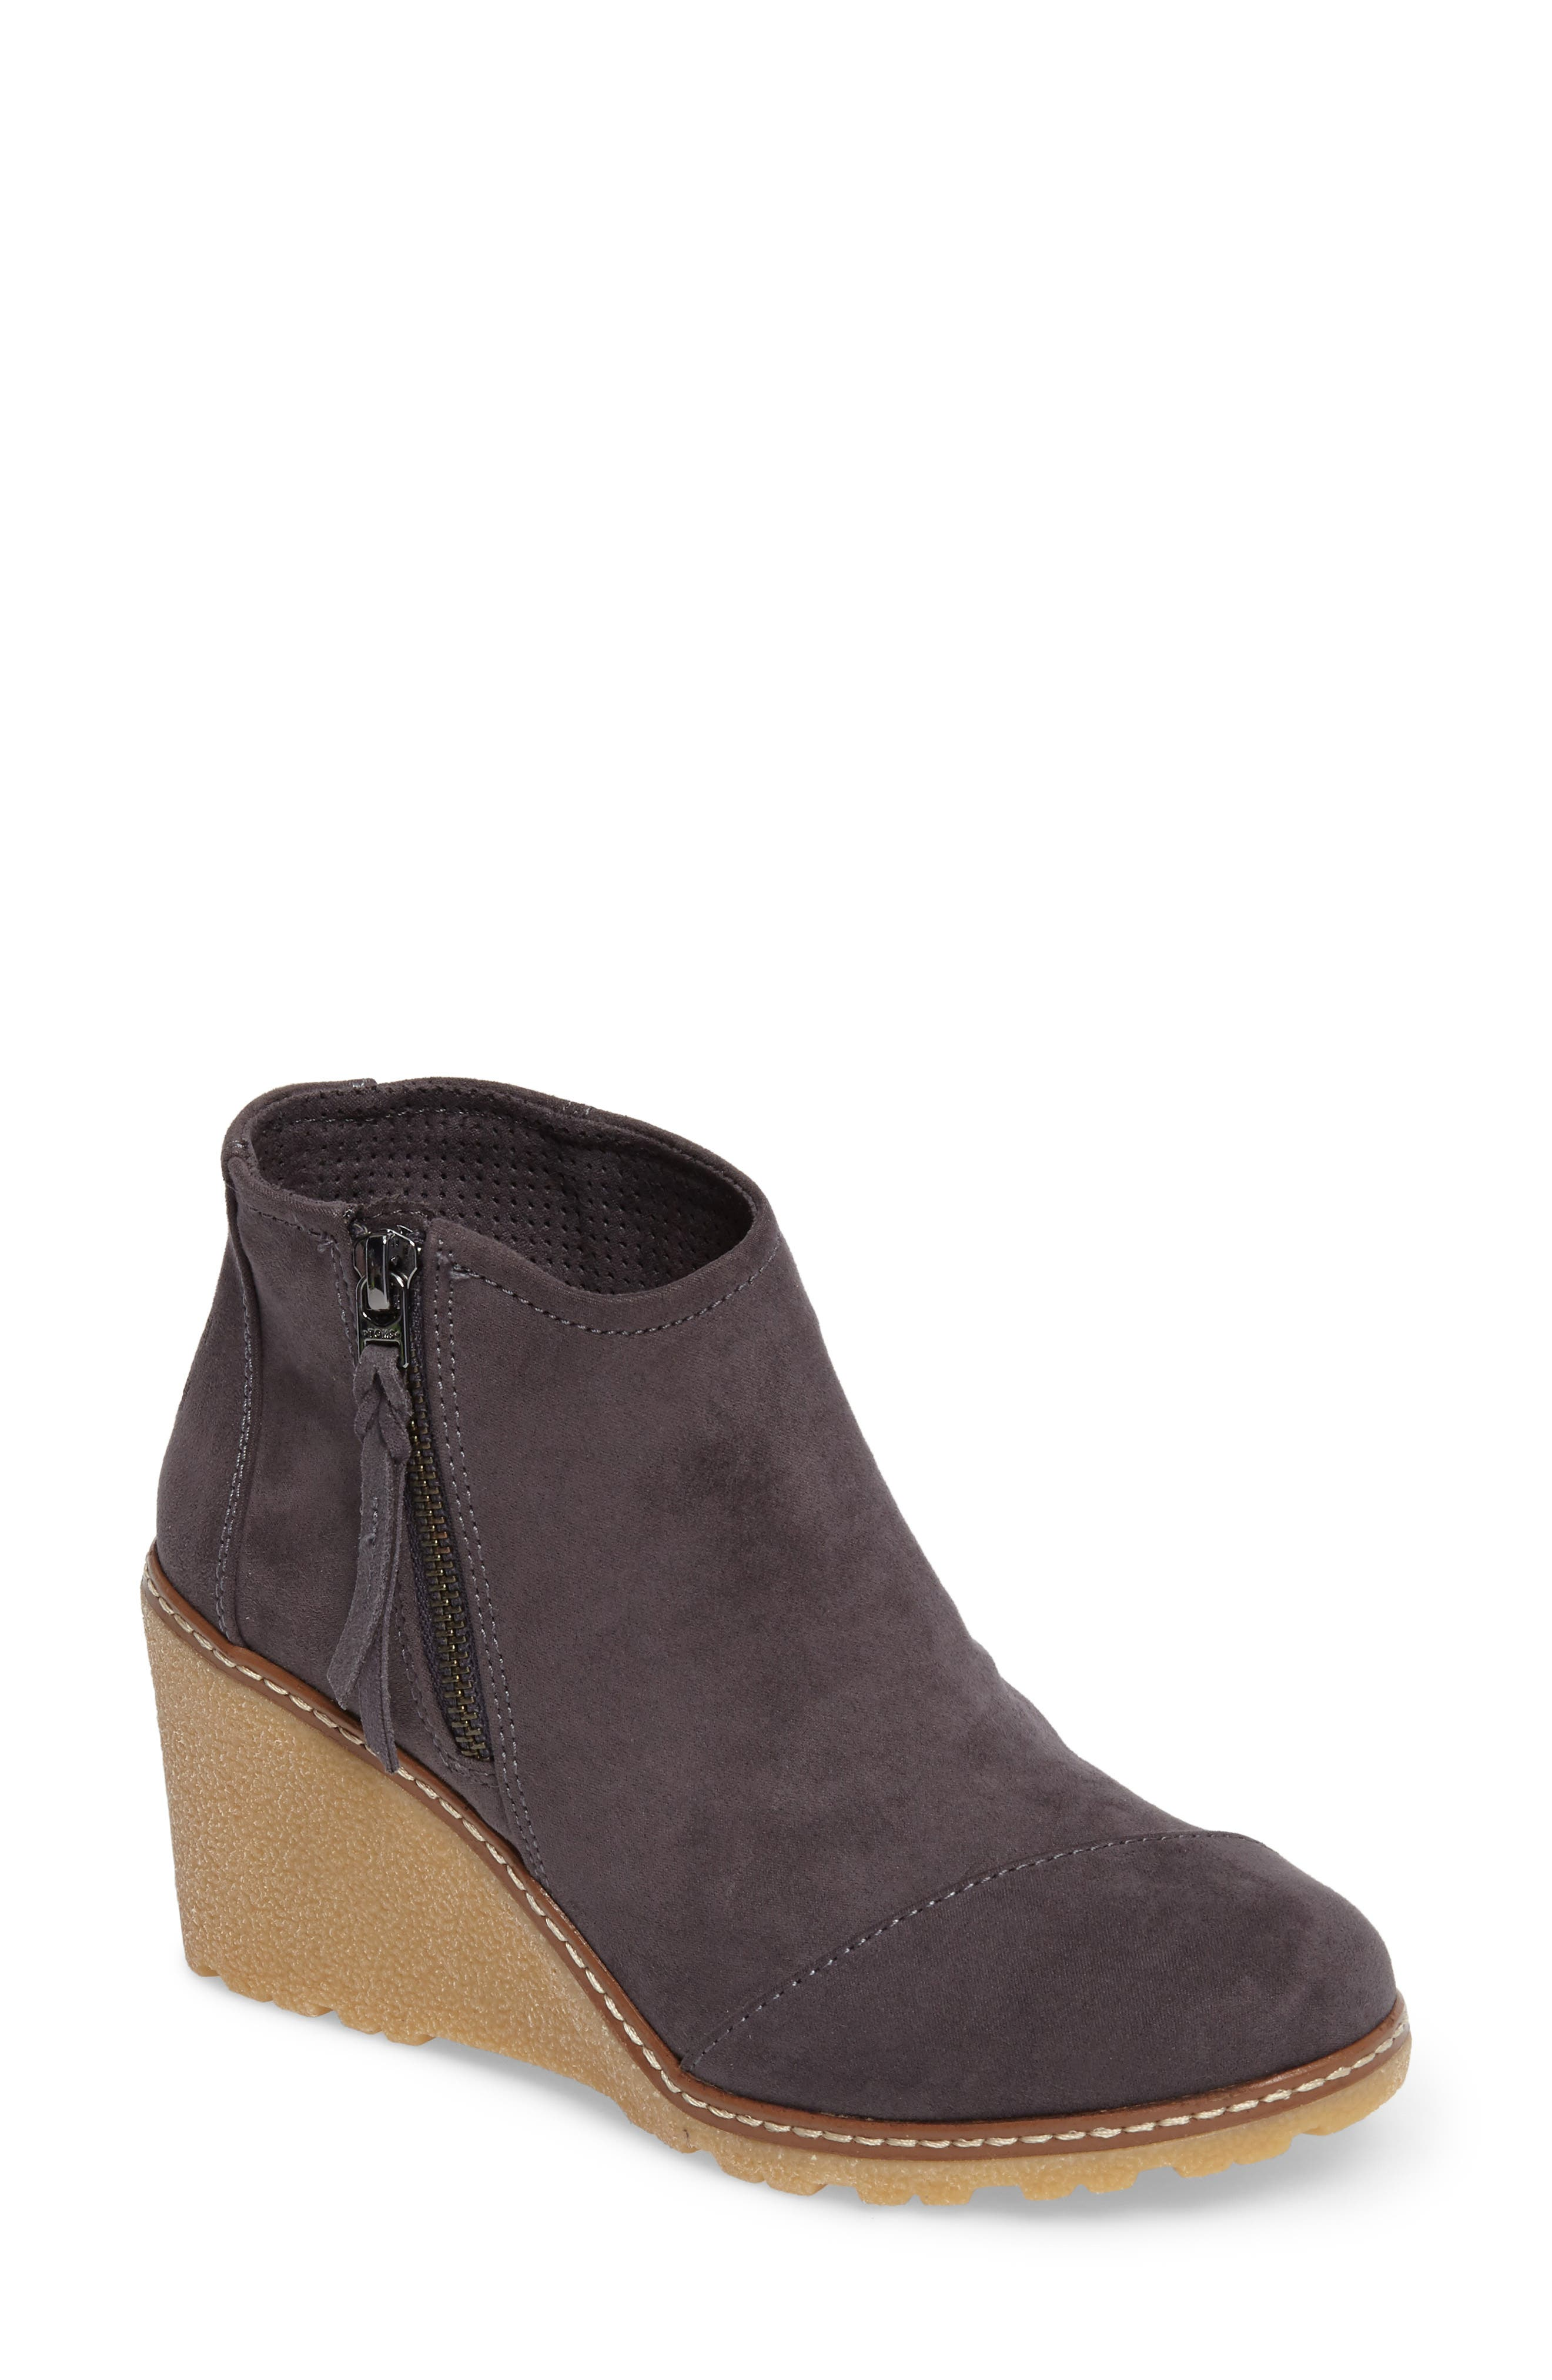 f94cea5cae2 TOMS Boots for Women